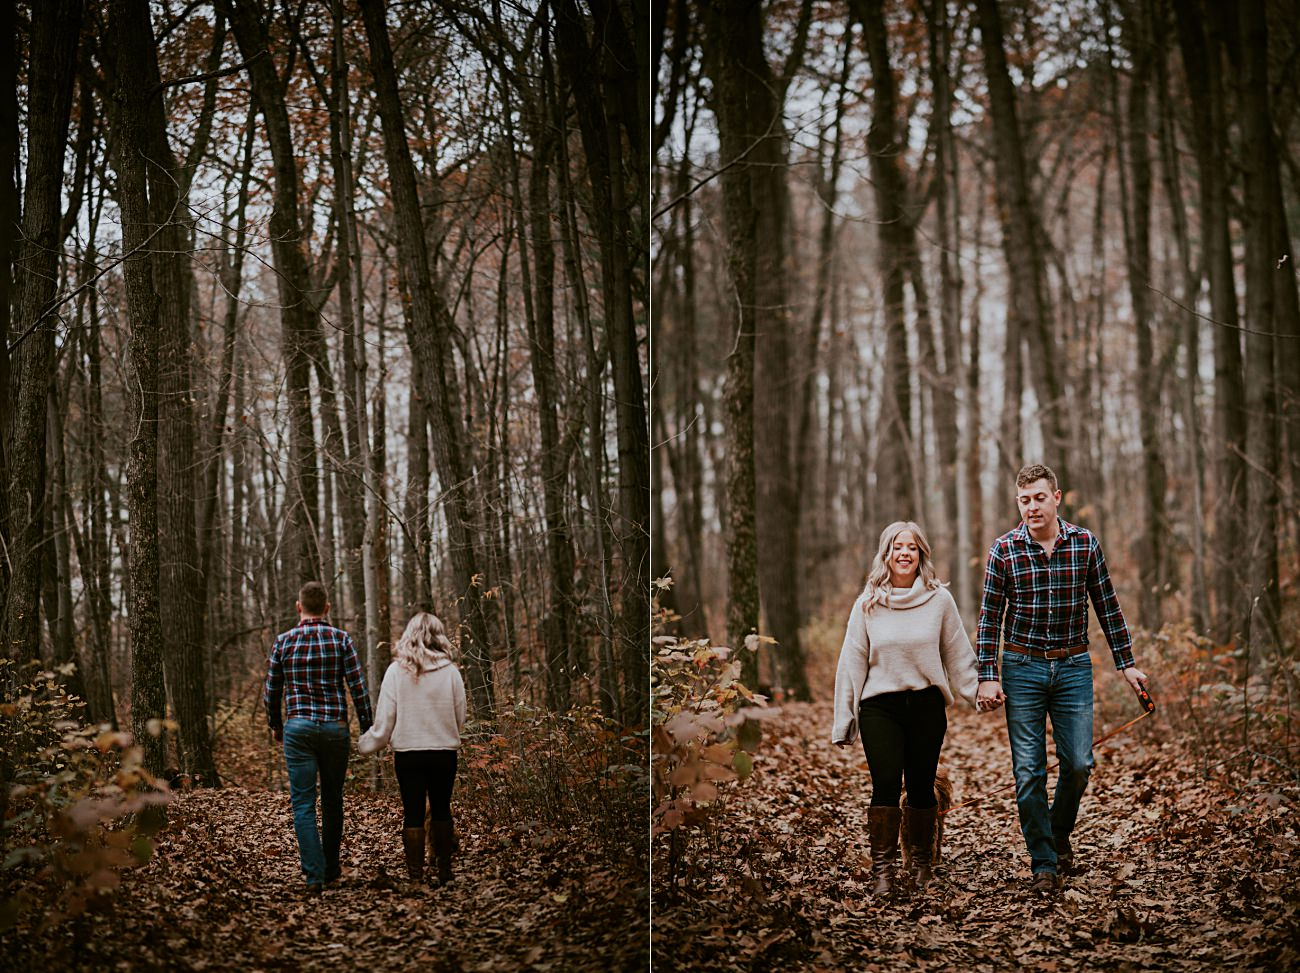 Fall Engagement, Woodsy Engagement, Mountain Engagement, Hiking Engagement, Engagement with Dogs, Bluff Engagement Session in Wisconsin, Madison WI Photographer